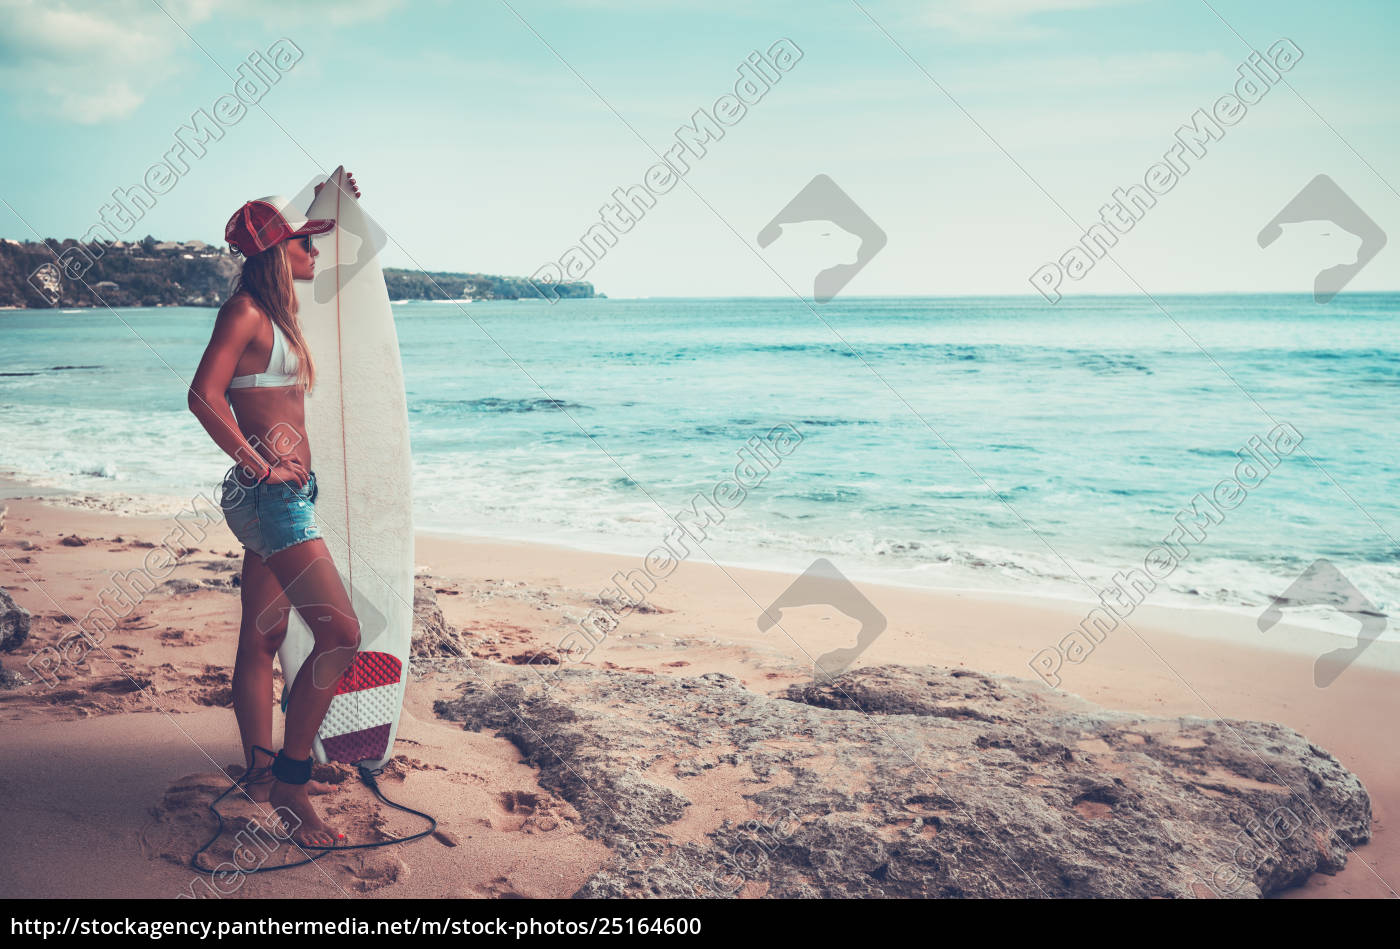 beautiful, surfer, girl, on, the, beach - 25164600